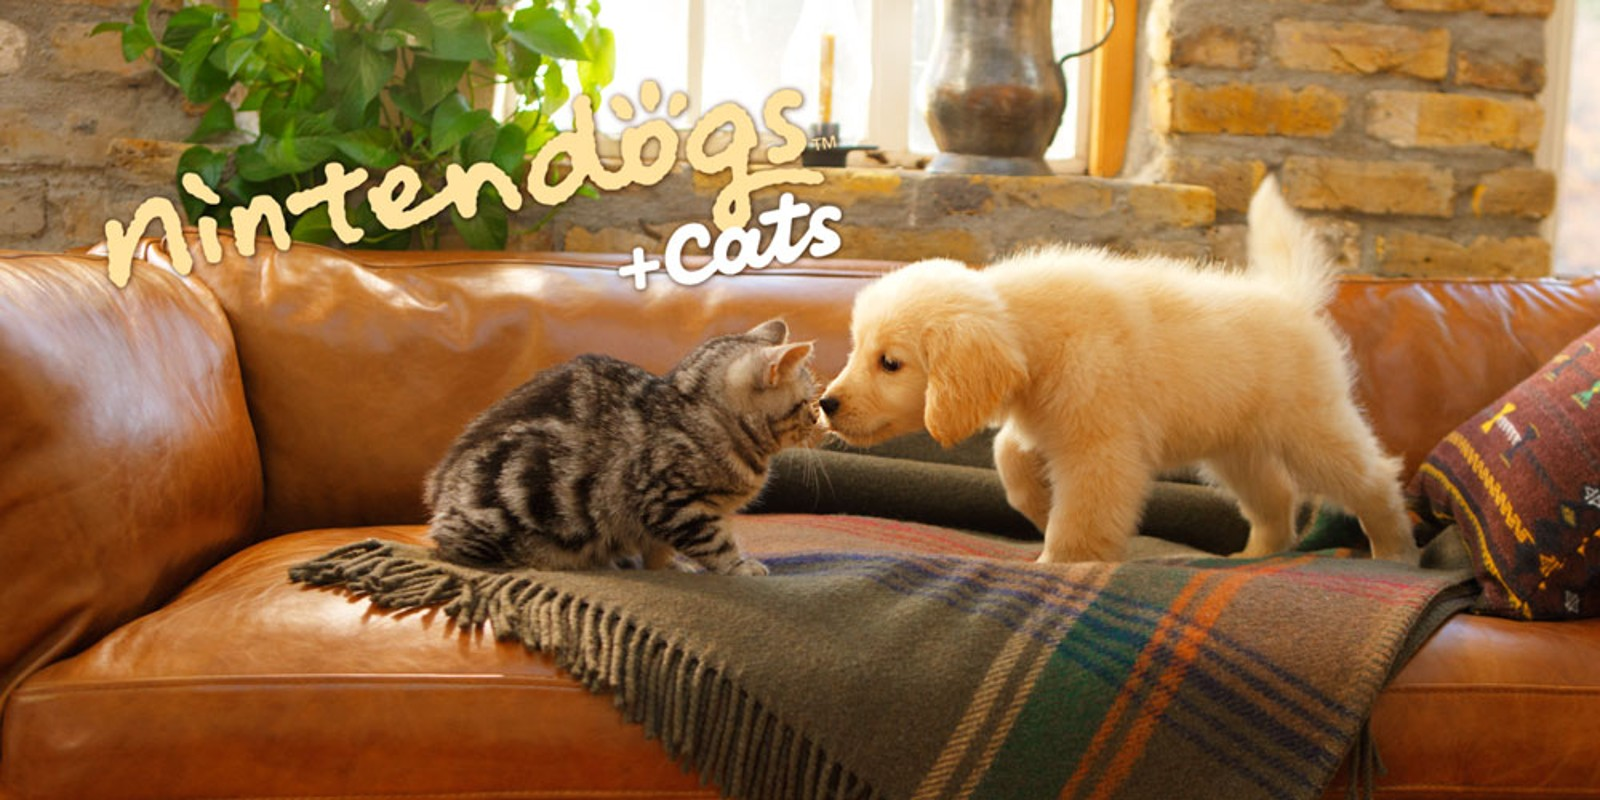 nintendogs + cats: Golden retriever & Nuovi amici